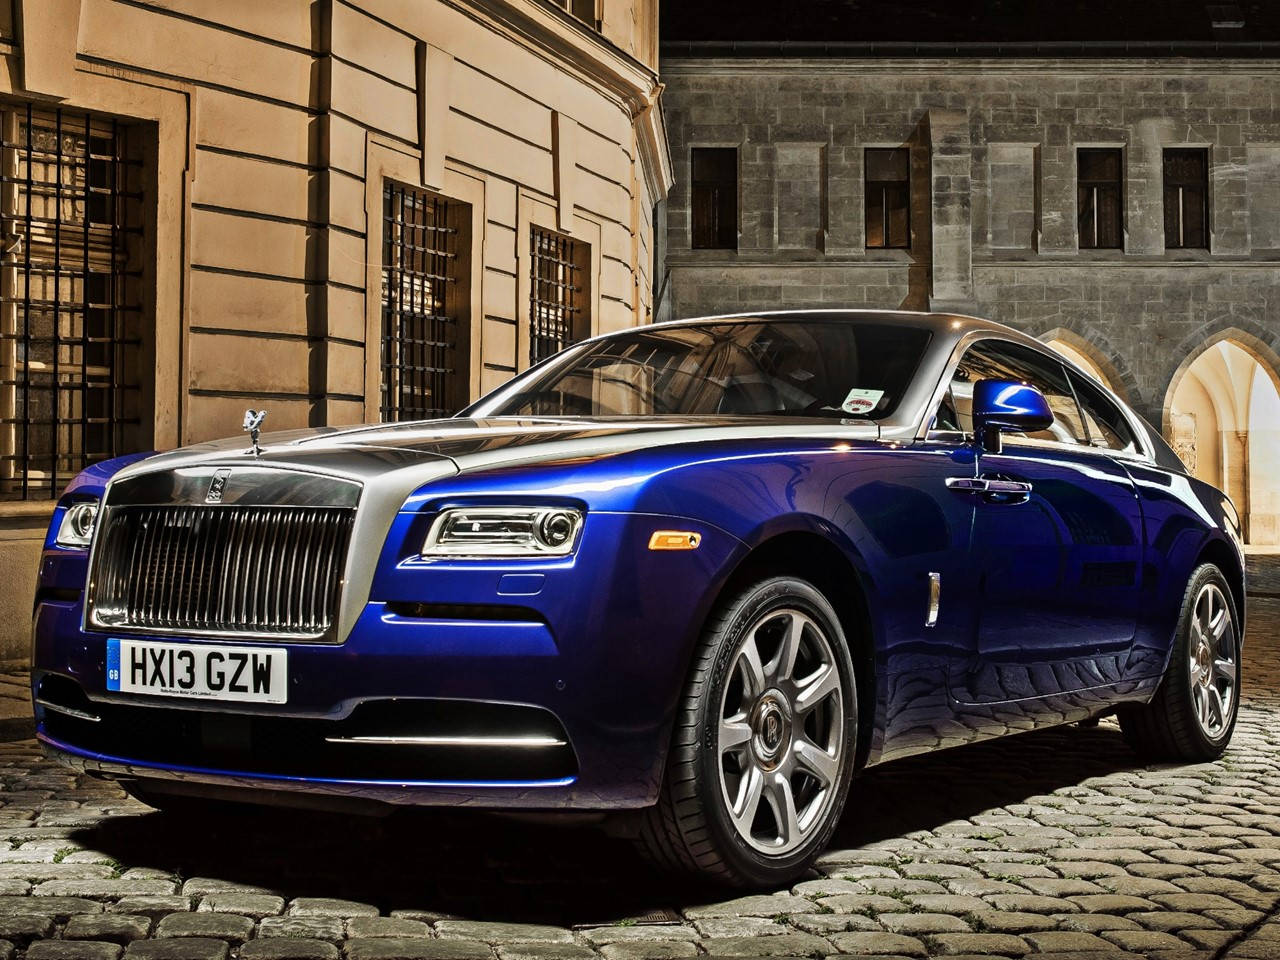 hyper luxury 2015 rolls royce wraith notoriousluxury. Black Bedroom Furniture Sets. Home Design Ideas